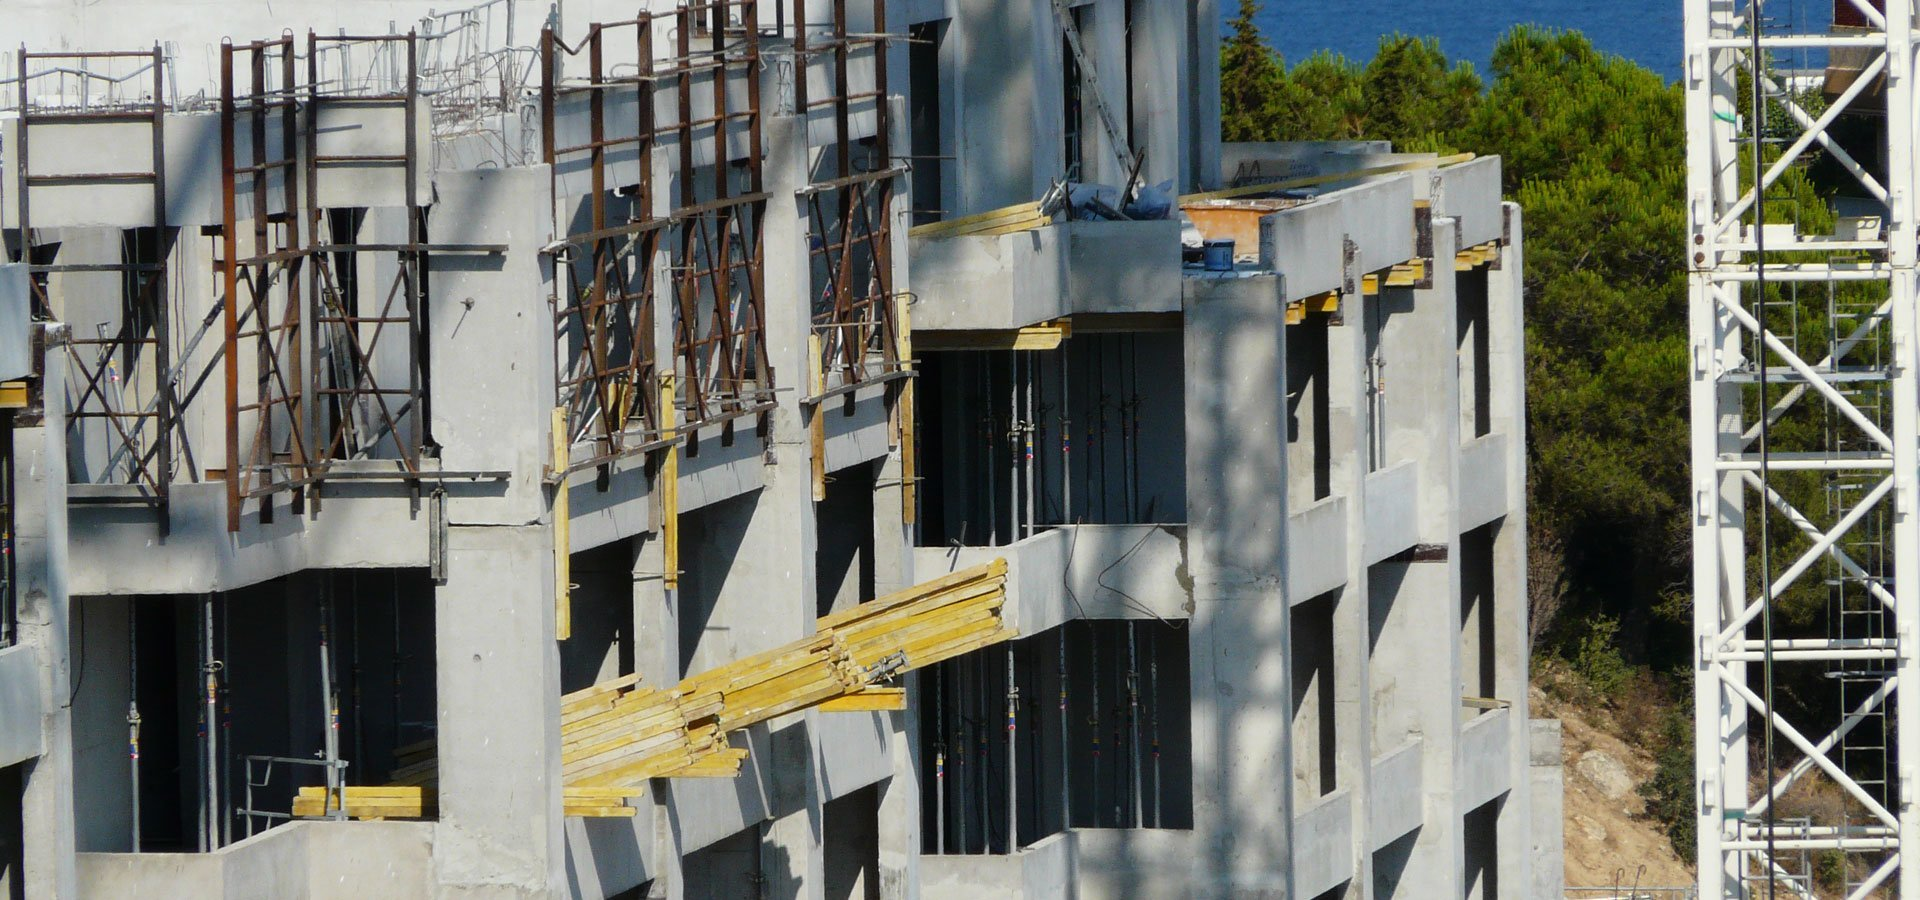 La construction de logements neufs en france a progress for Construction logement neuf